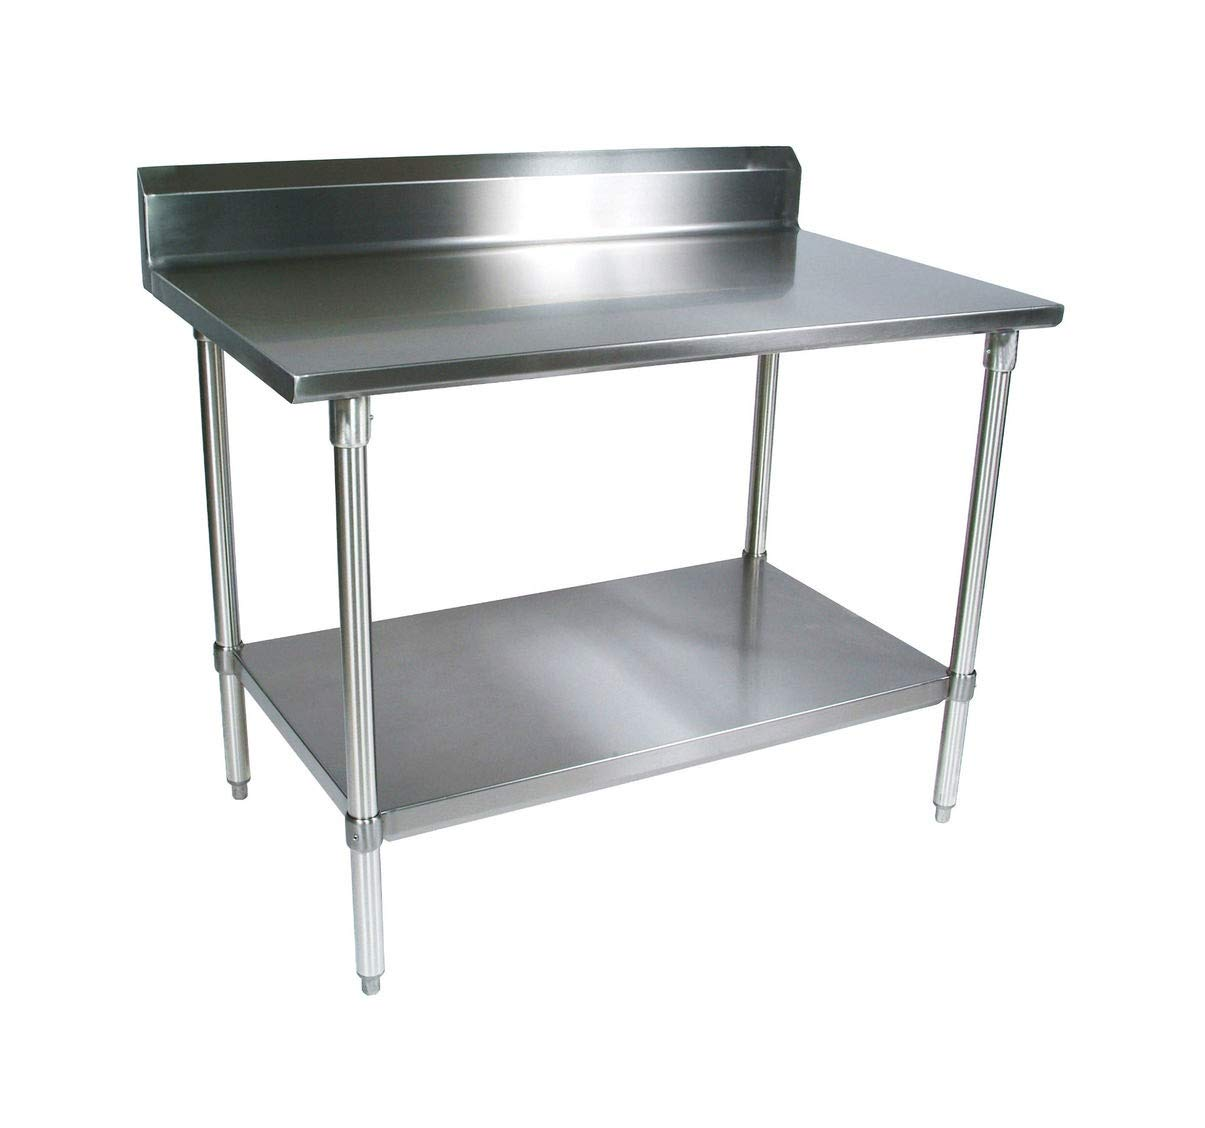 Amazon.com: L and J Stainless Steel Prep Work Table with ...